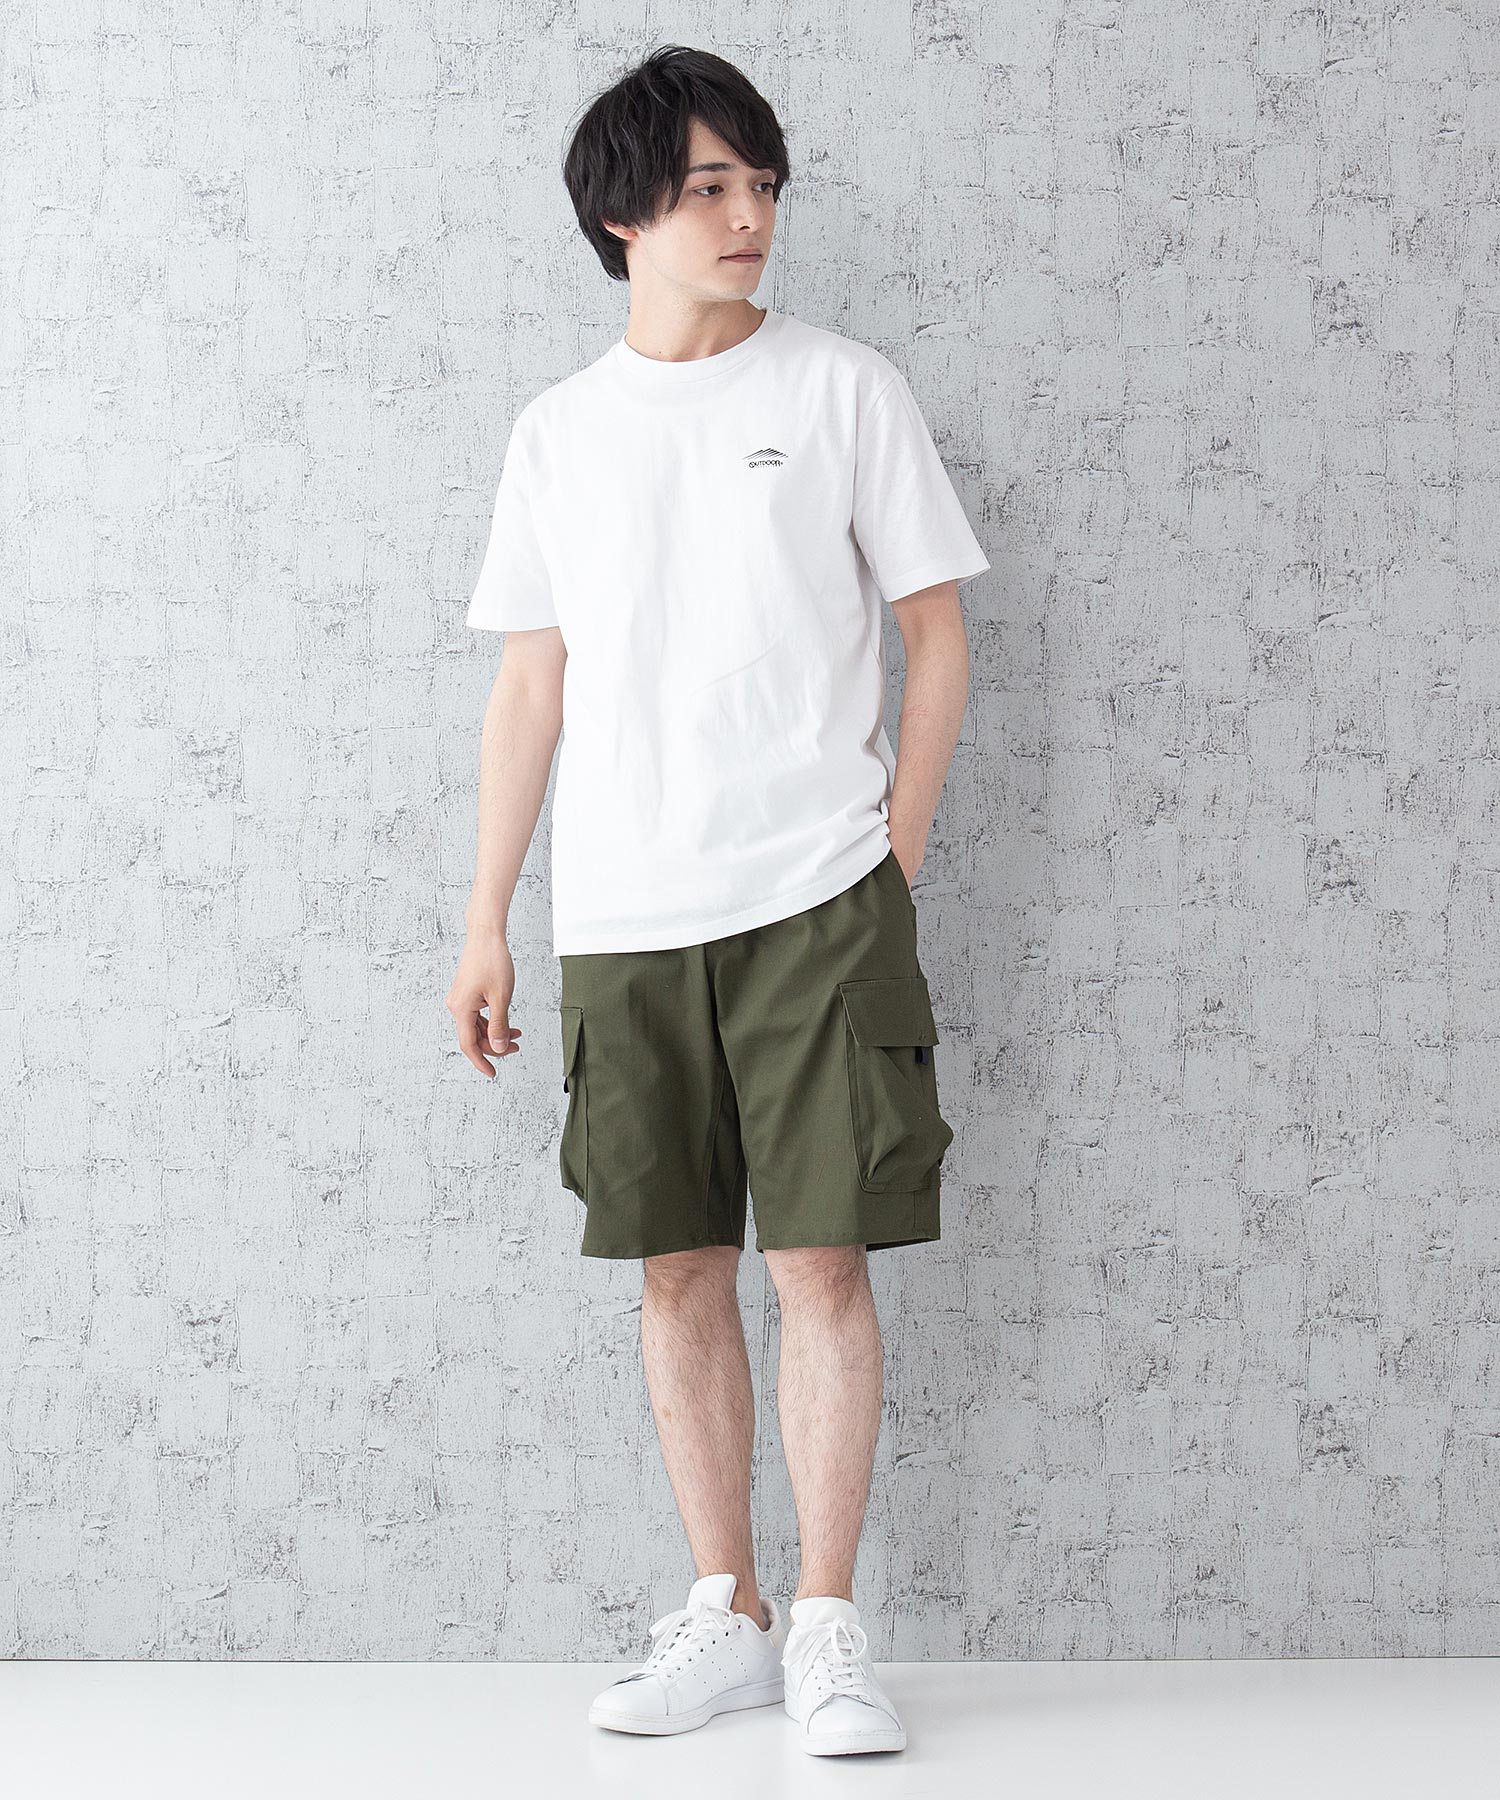 OUTDOOR PRODUCTS APPAREL フードエンボスプルパーカー